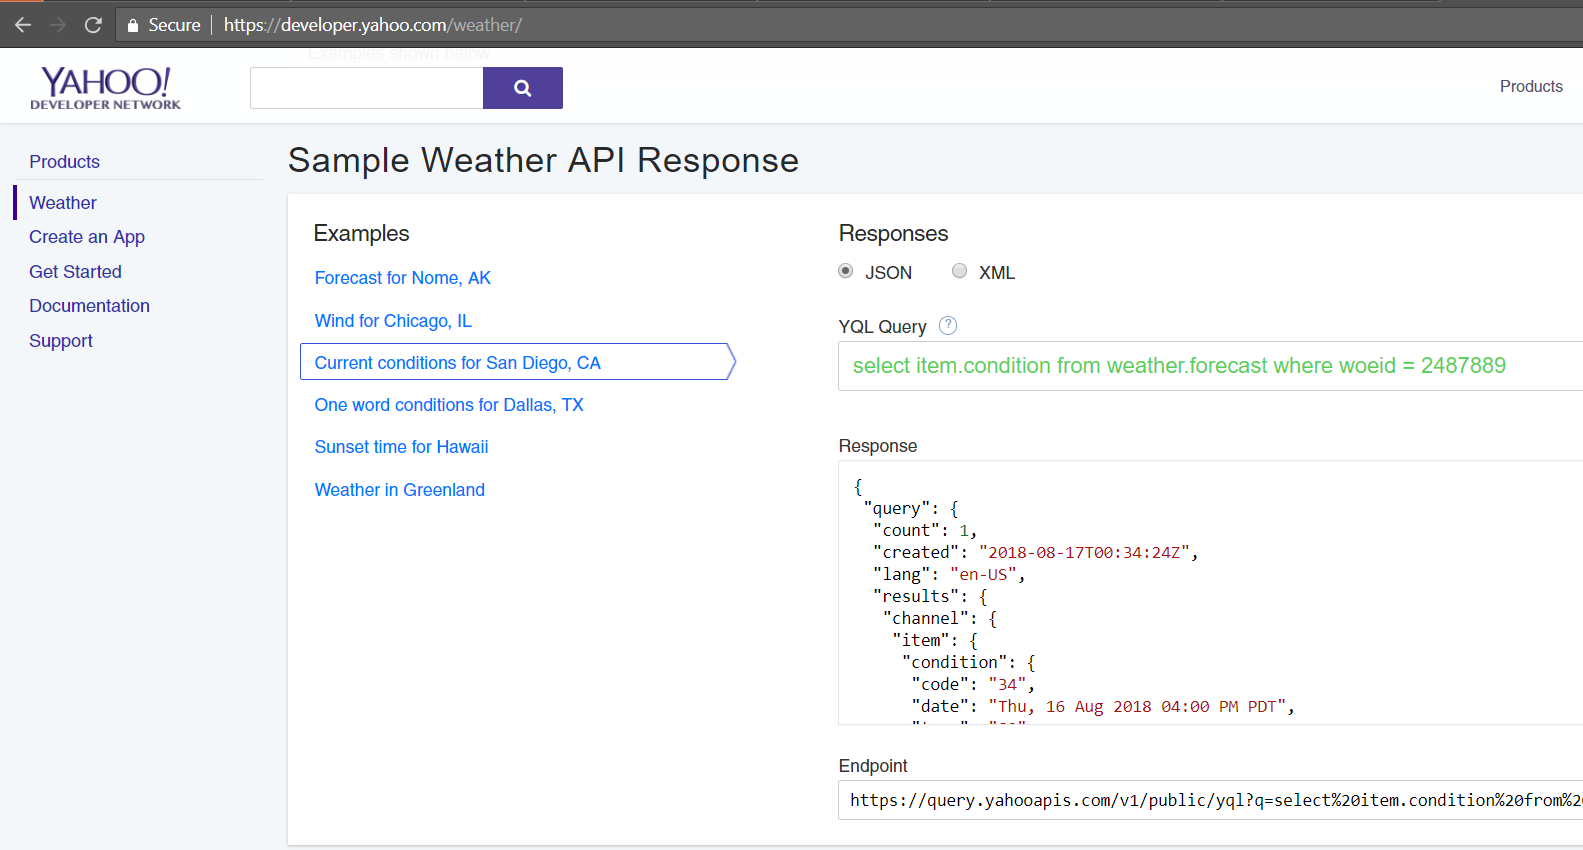 Get Weather by Speaking App with Azure Cognitive Services - Carl de